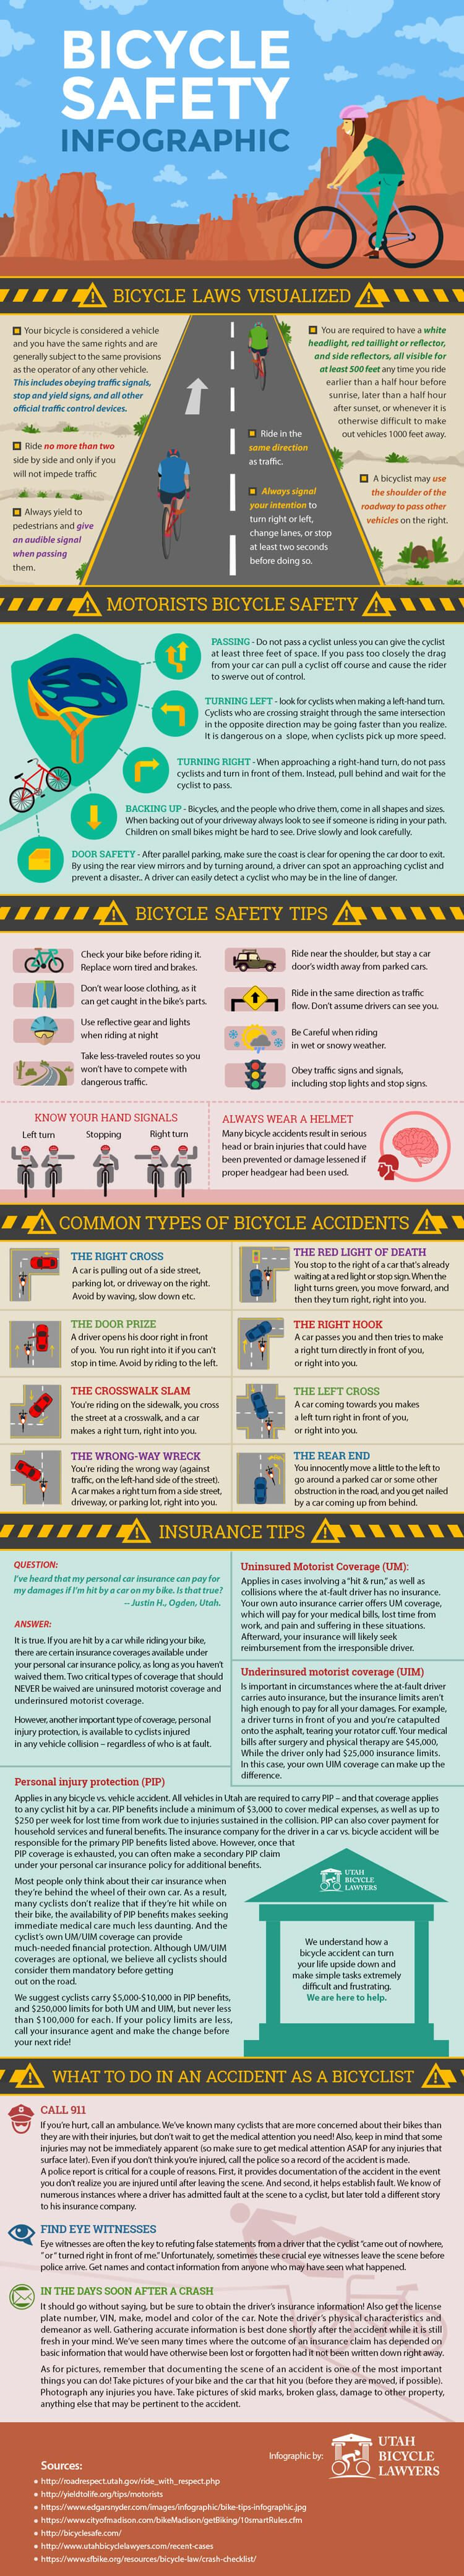 WHAT CYCLISTS SHOULD DO IF A DRIVER CRASHES INTO THEM. Guest post with advice about what cyclists should do if a driver crashes into them. Includes infographic about common cycling collisions, and advice to avoid collisions for drivers and cyclists. Also, the 8 most common types of bicycling collisions.